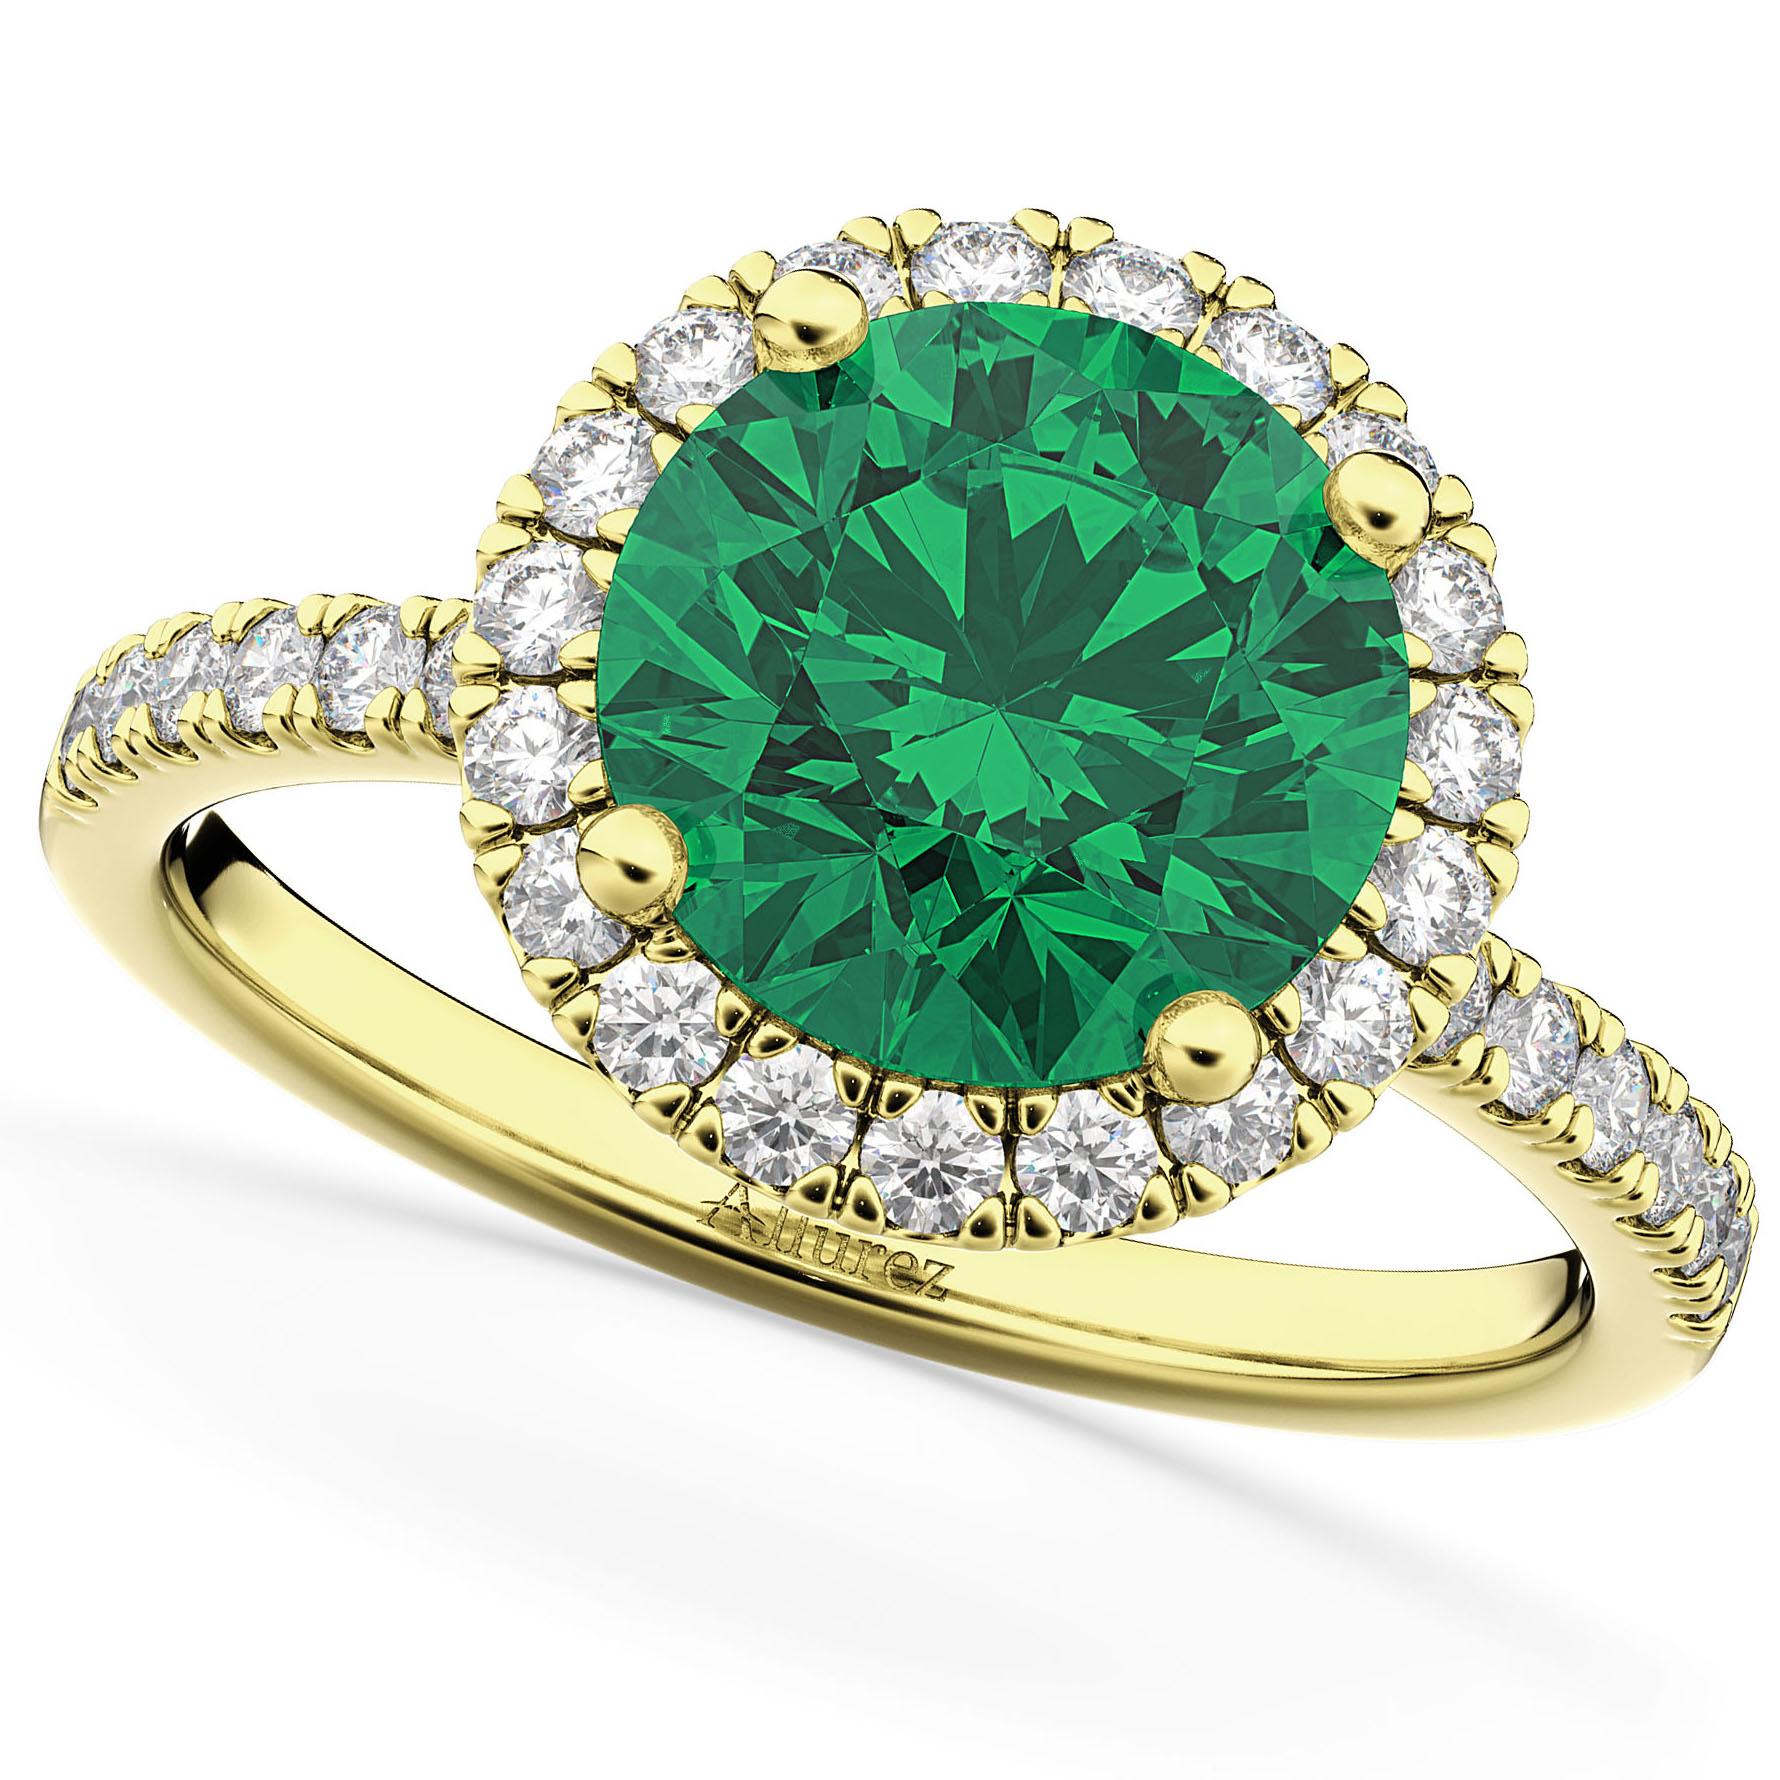 Halo Emerald & Diamond Engagement Ring 14K Yellow Gold 2.80ct